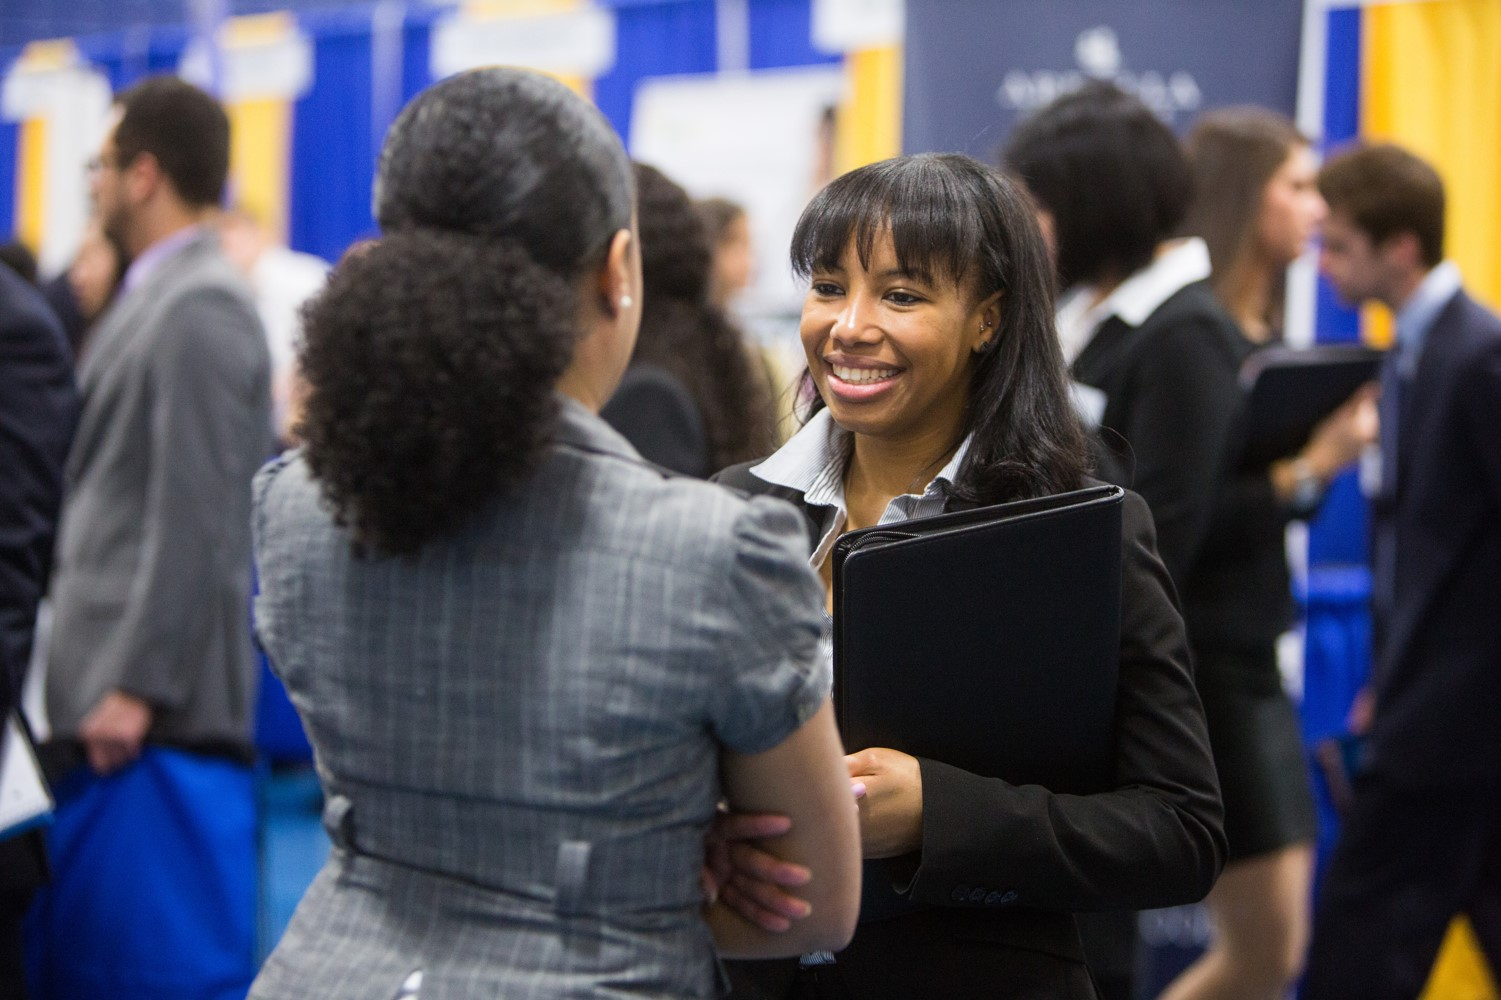 student at the career fair